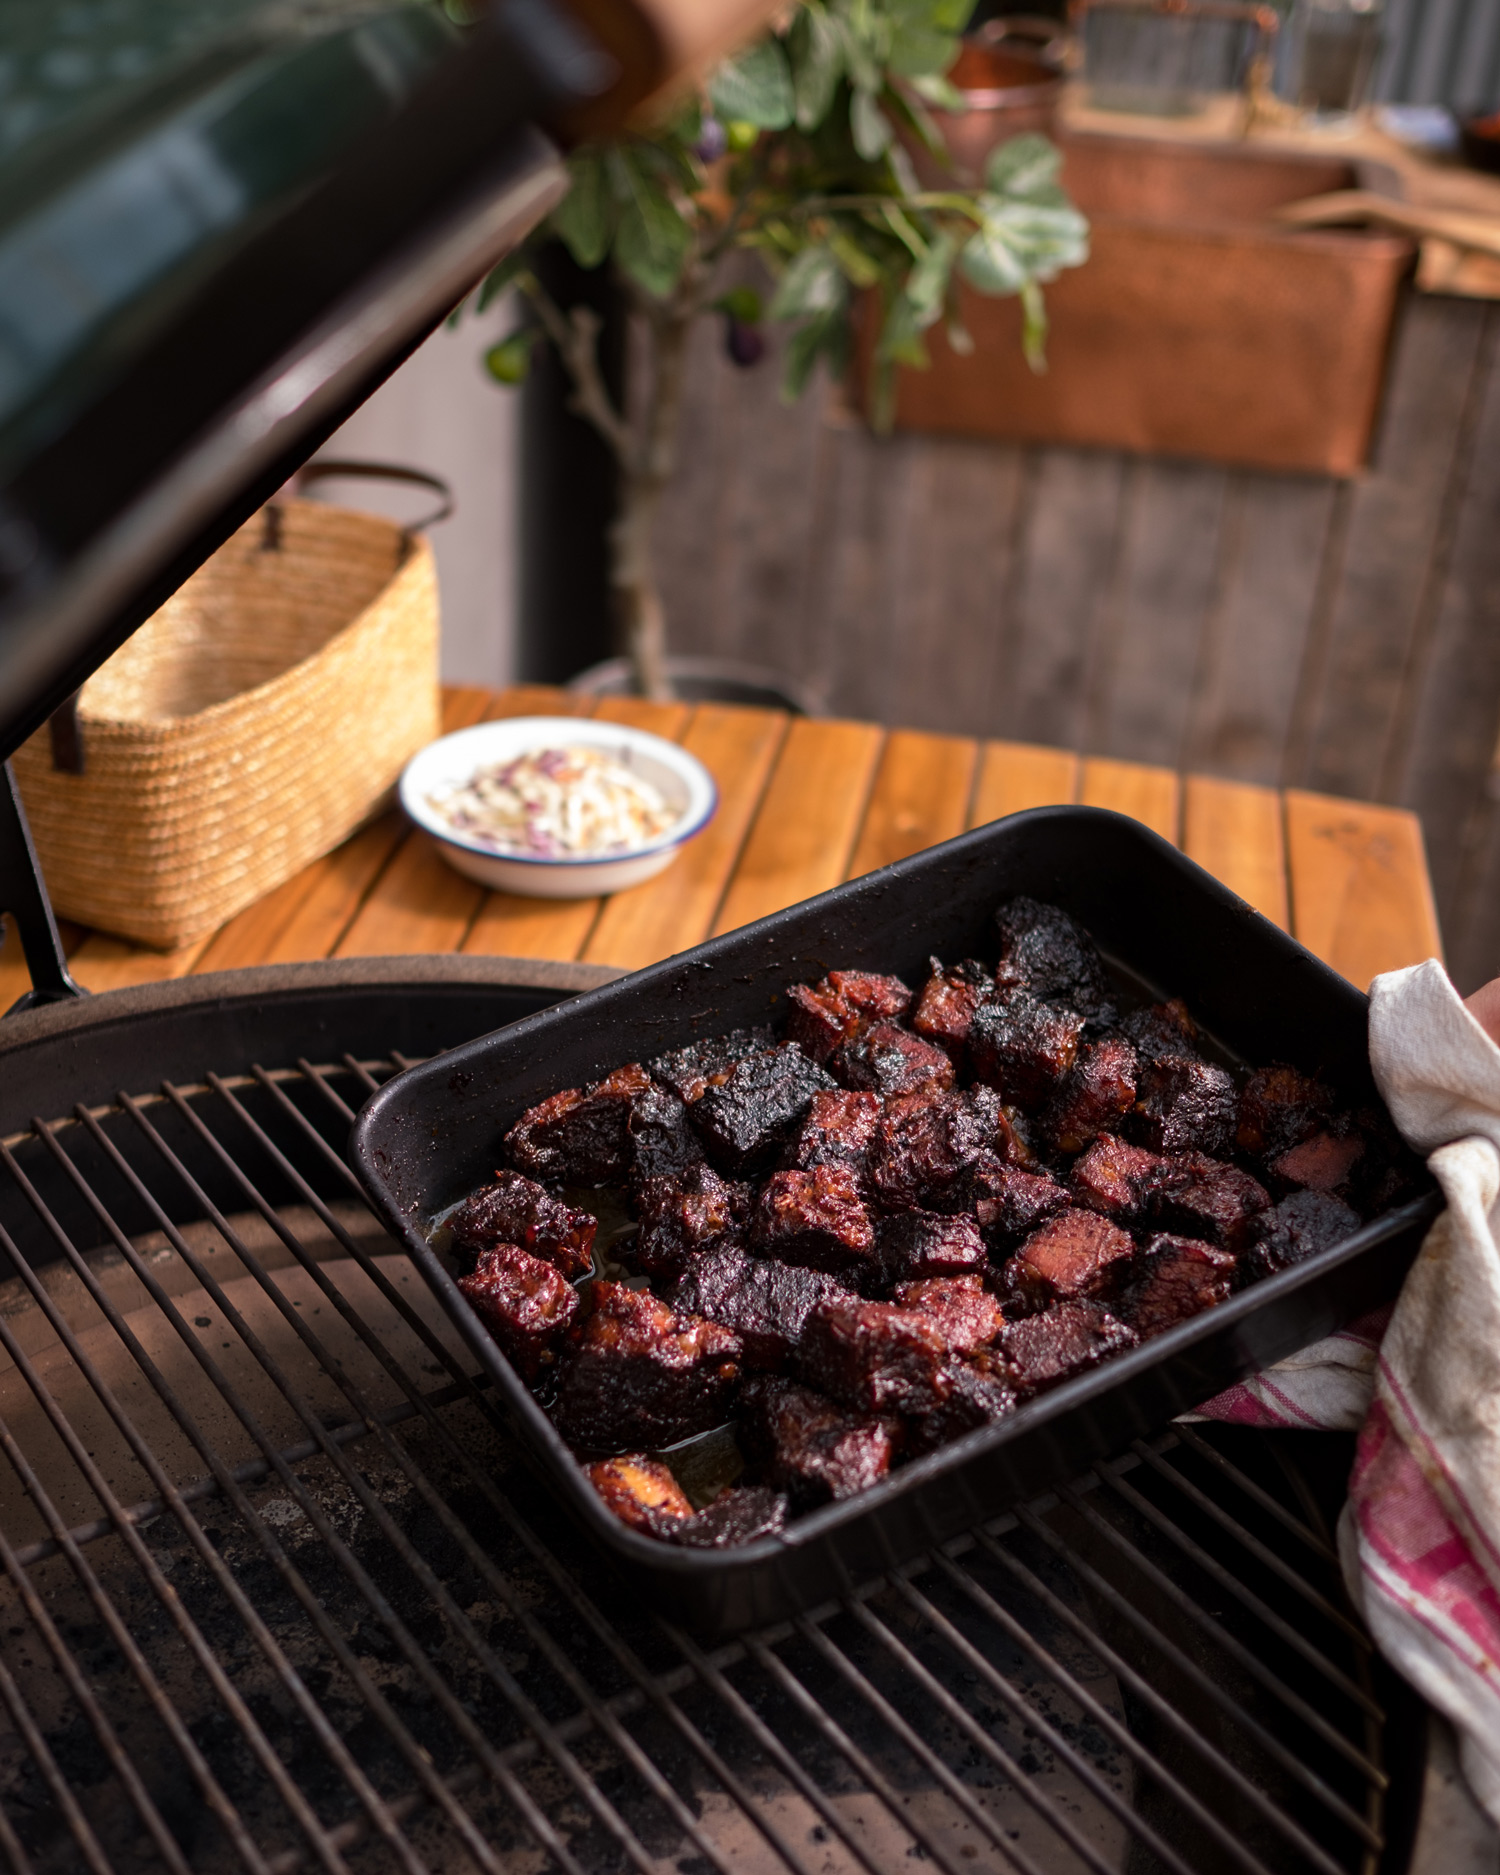 remove the burnt ends